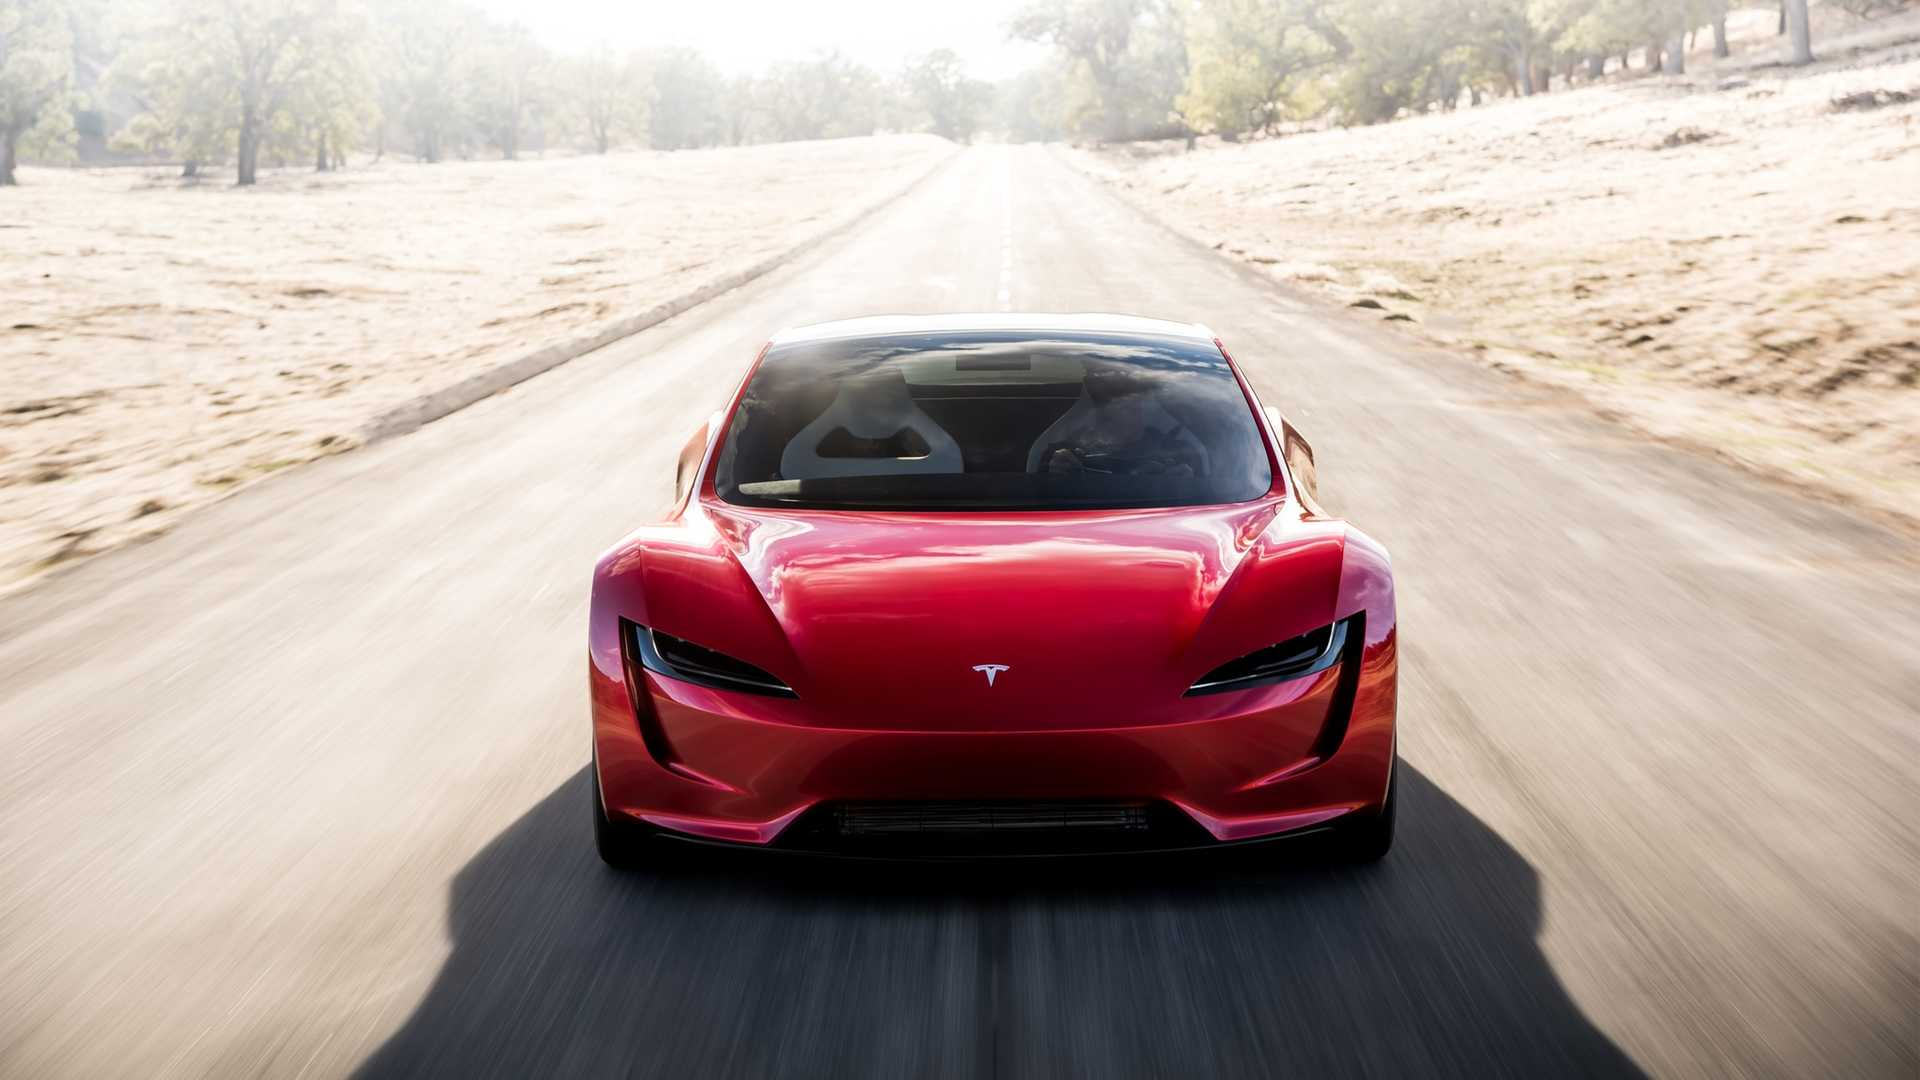 99 All New 2020 Tesla Roadster Battery Concept